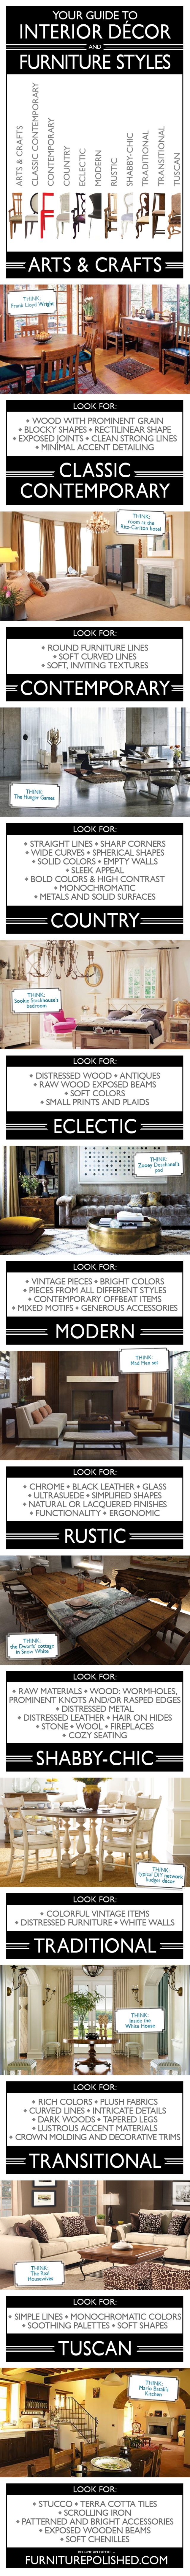 72 best Home Decorating Ideas images on Pinterest